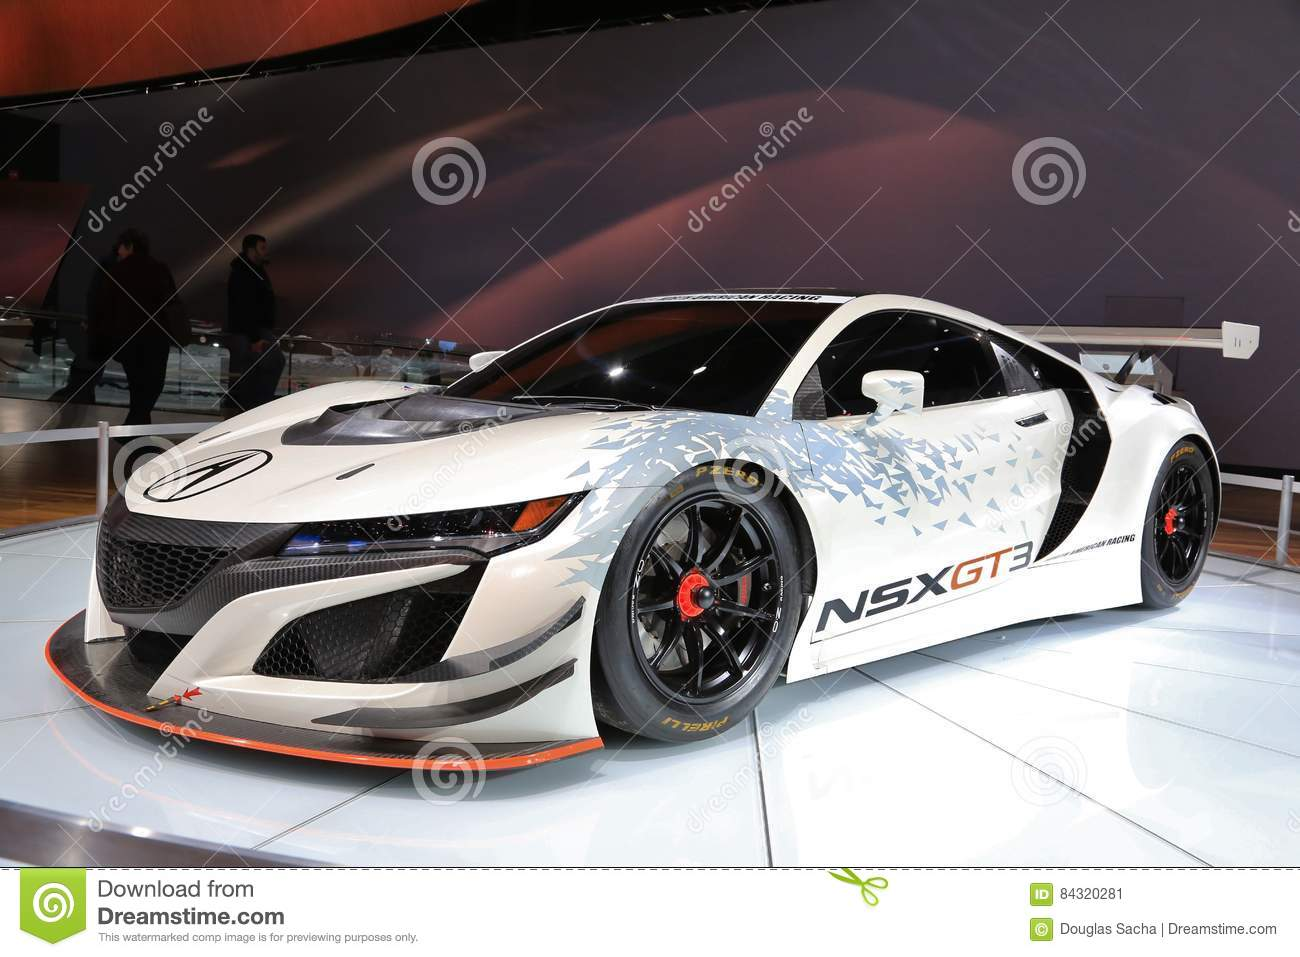 New Vehicles 2017 >> Acura Nsx Gt3 On Display At The 2017 North American